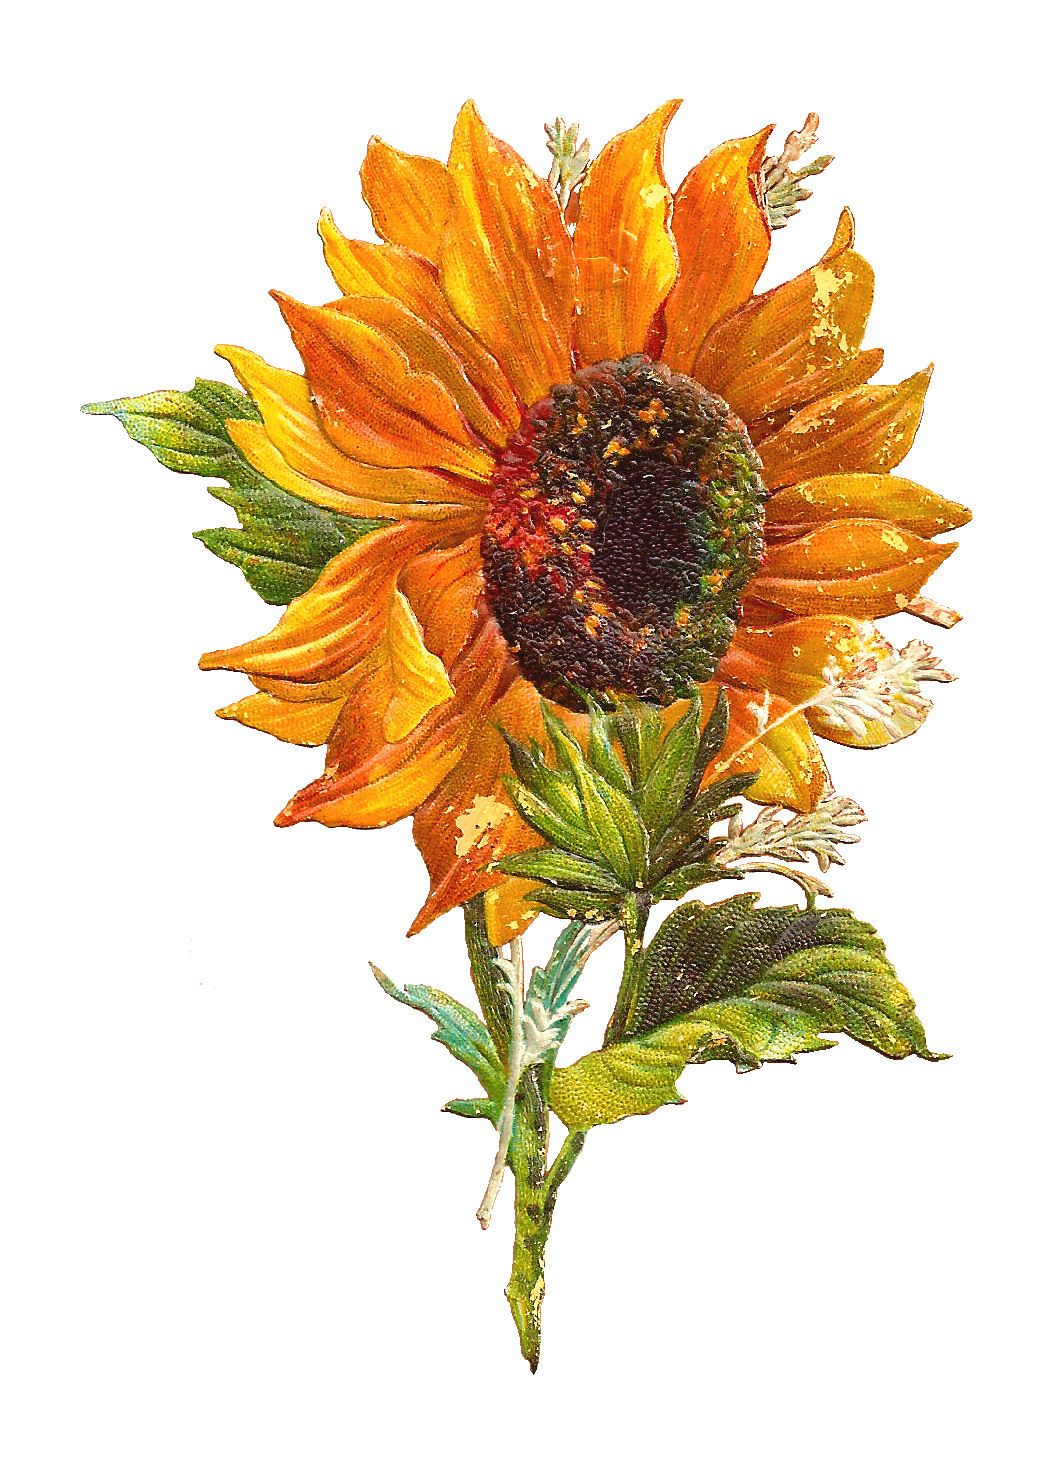 Antique Images Free Flower Graphic Sunflower Clip Art of